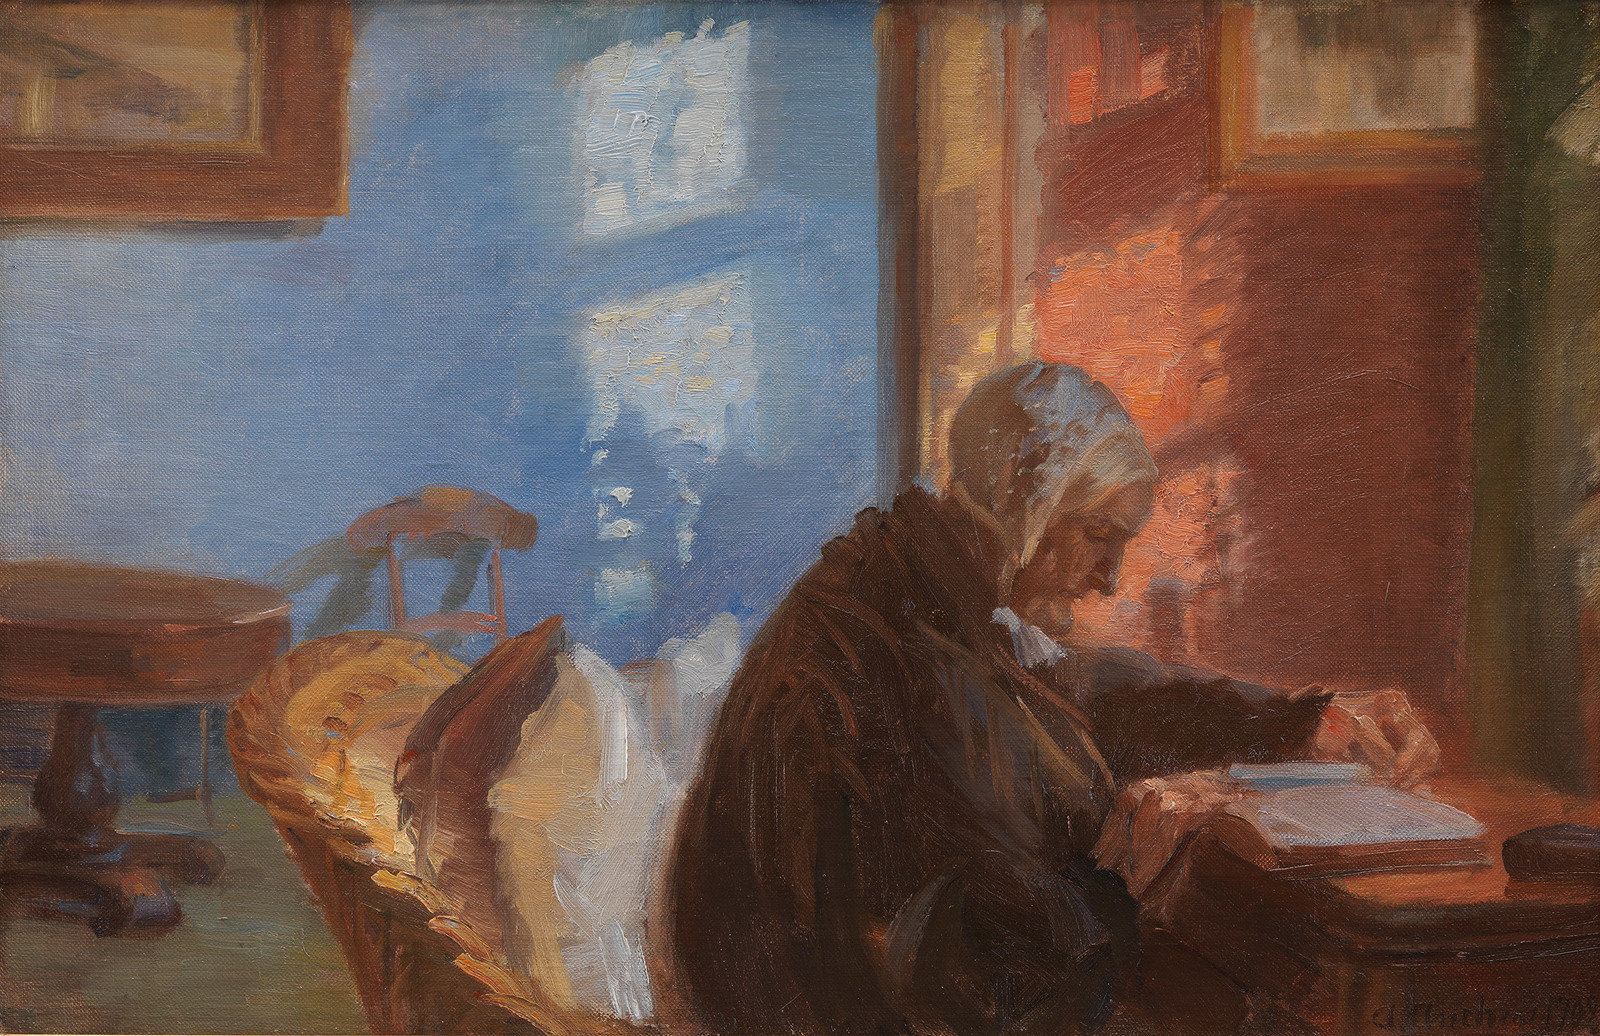 Oil painting of older woman sitting at desk reading a book next to sunlit window.